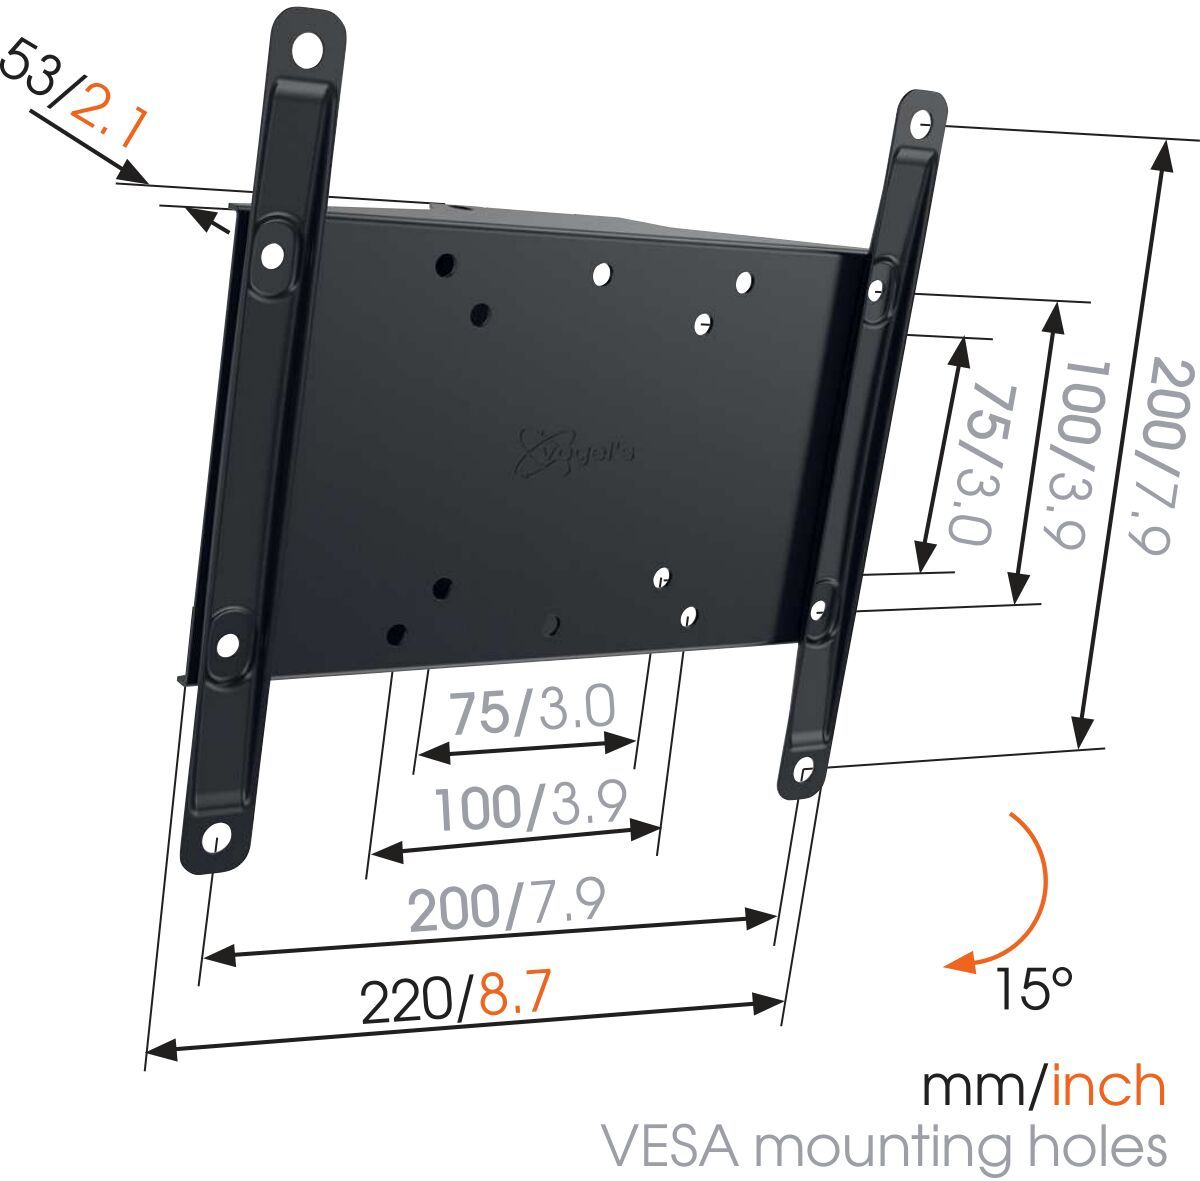 Vogel's MA 2010 (A1) Tilting TV Wall Mount - Suitable for 19 up to 40 inch TVs up to 30 kg - Tilt up to 15° - Dimensions